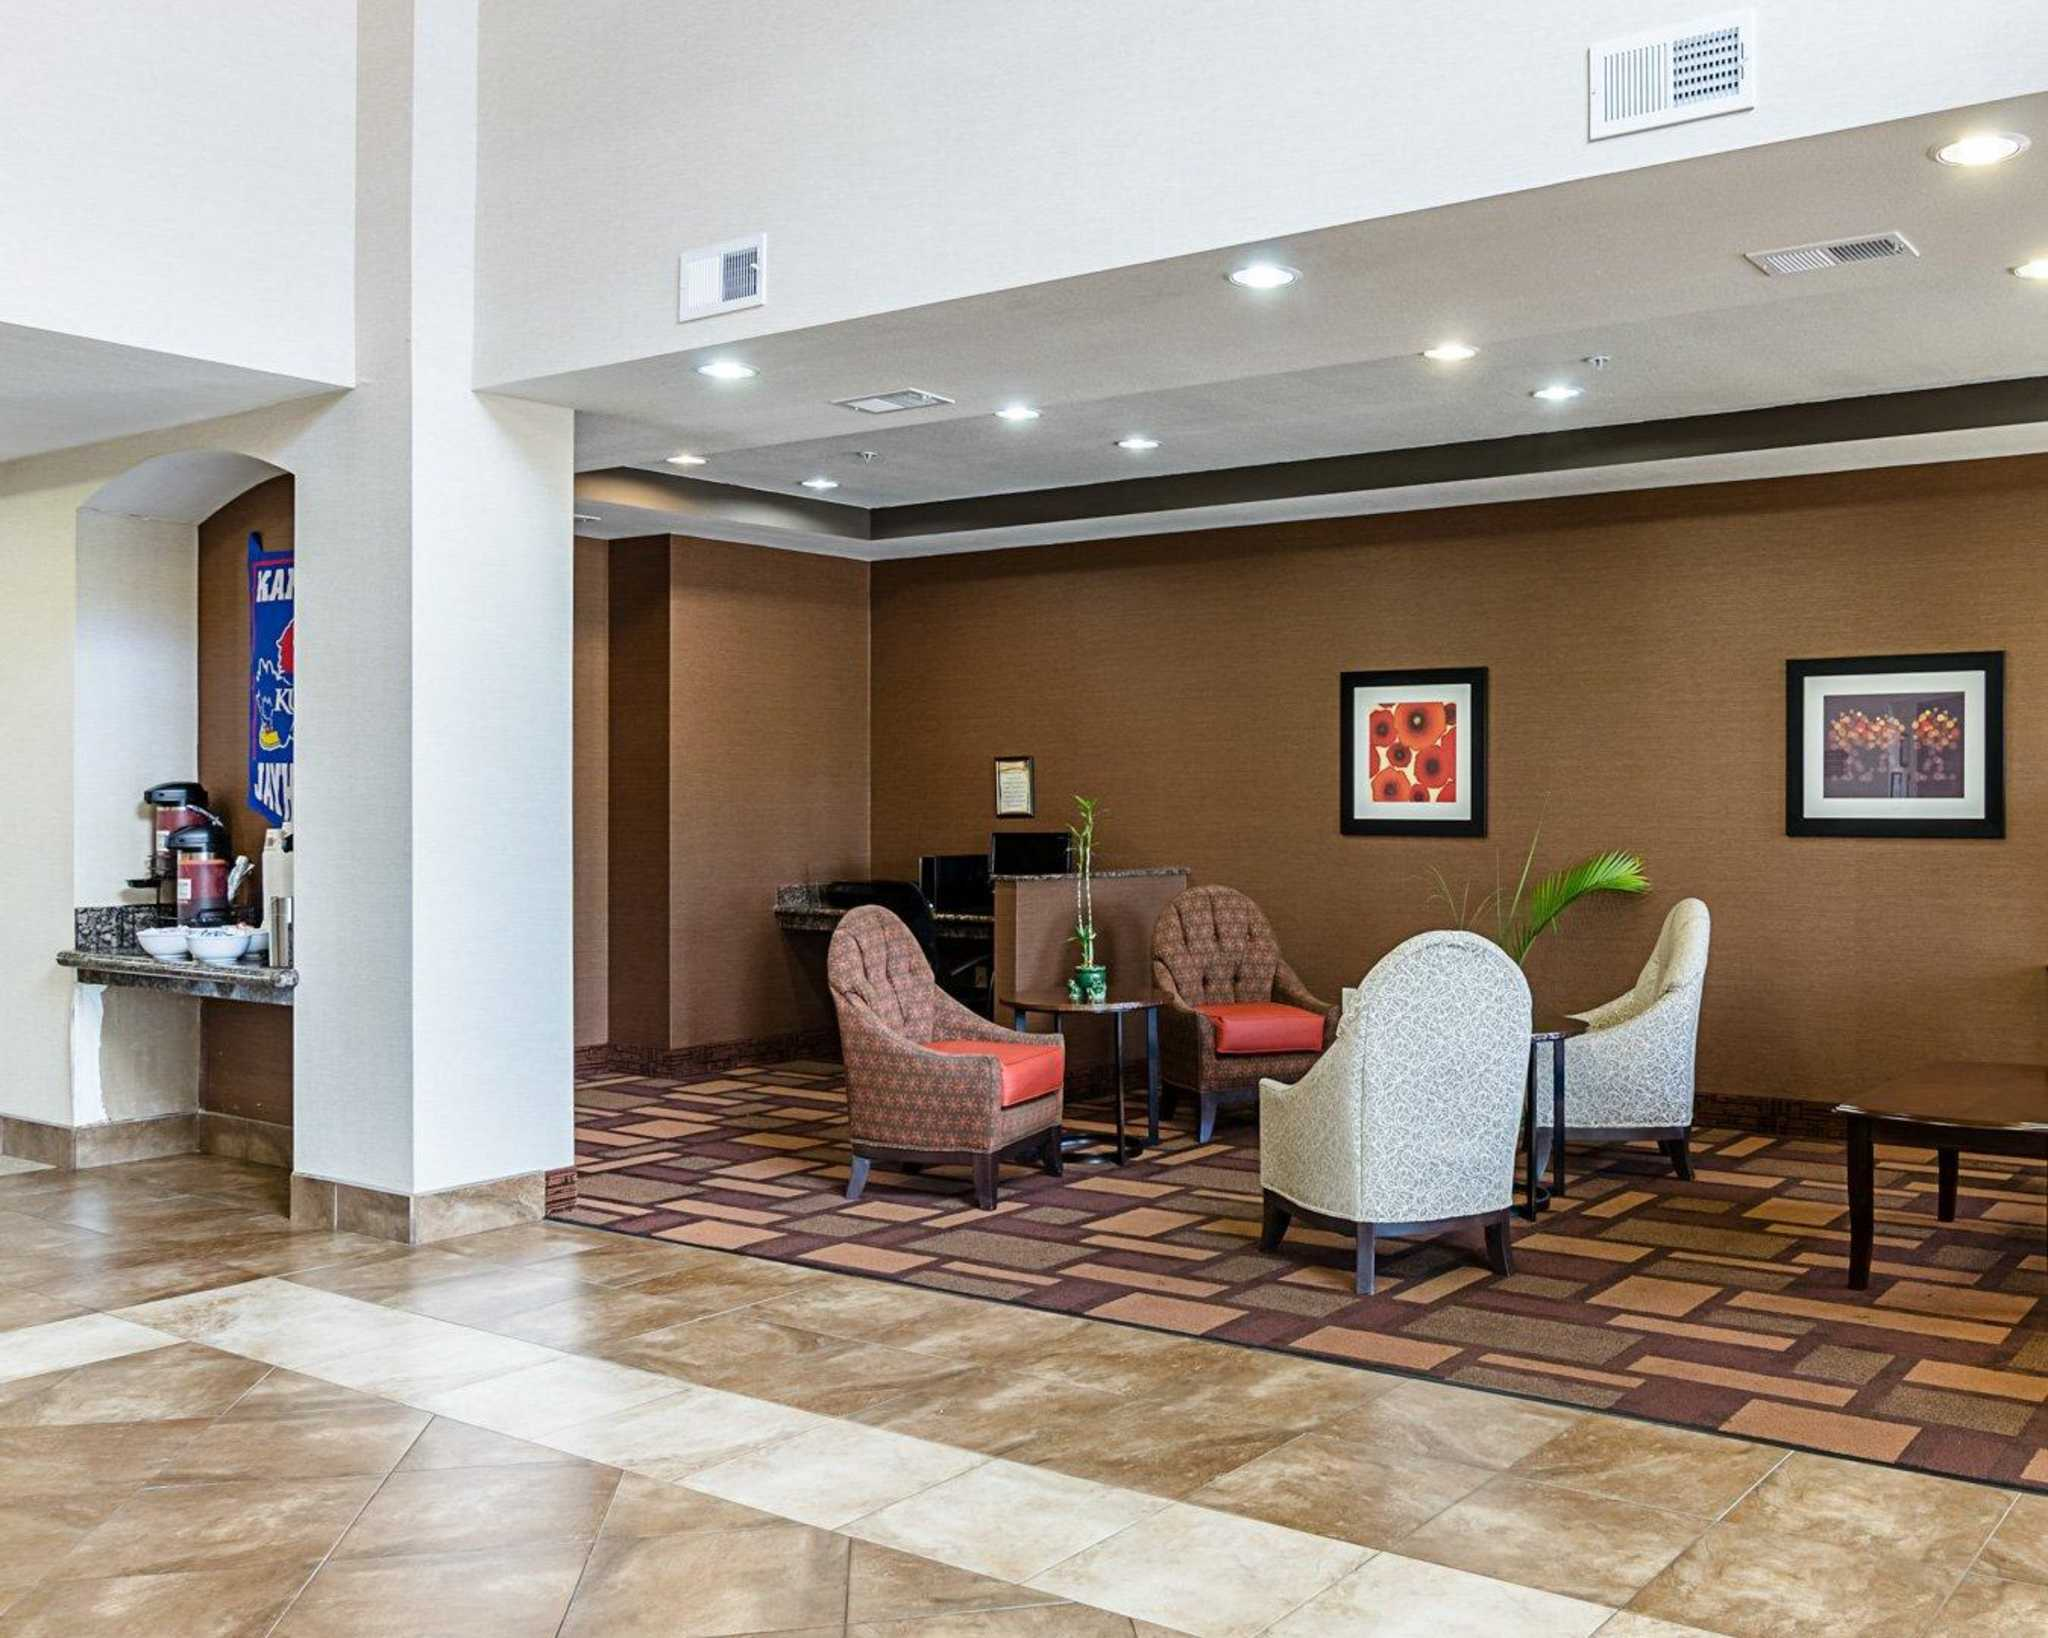 Comfort Inn & Suites Lawrence - University Area image 15